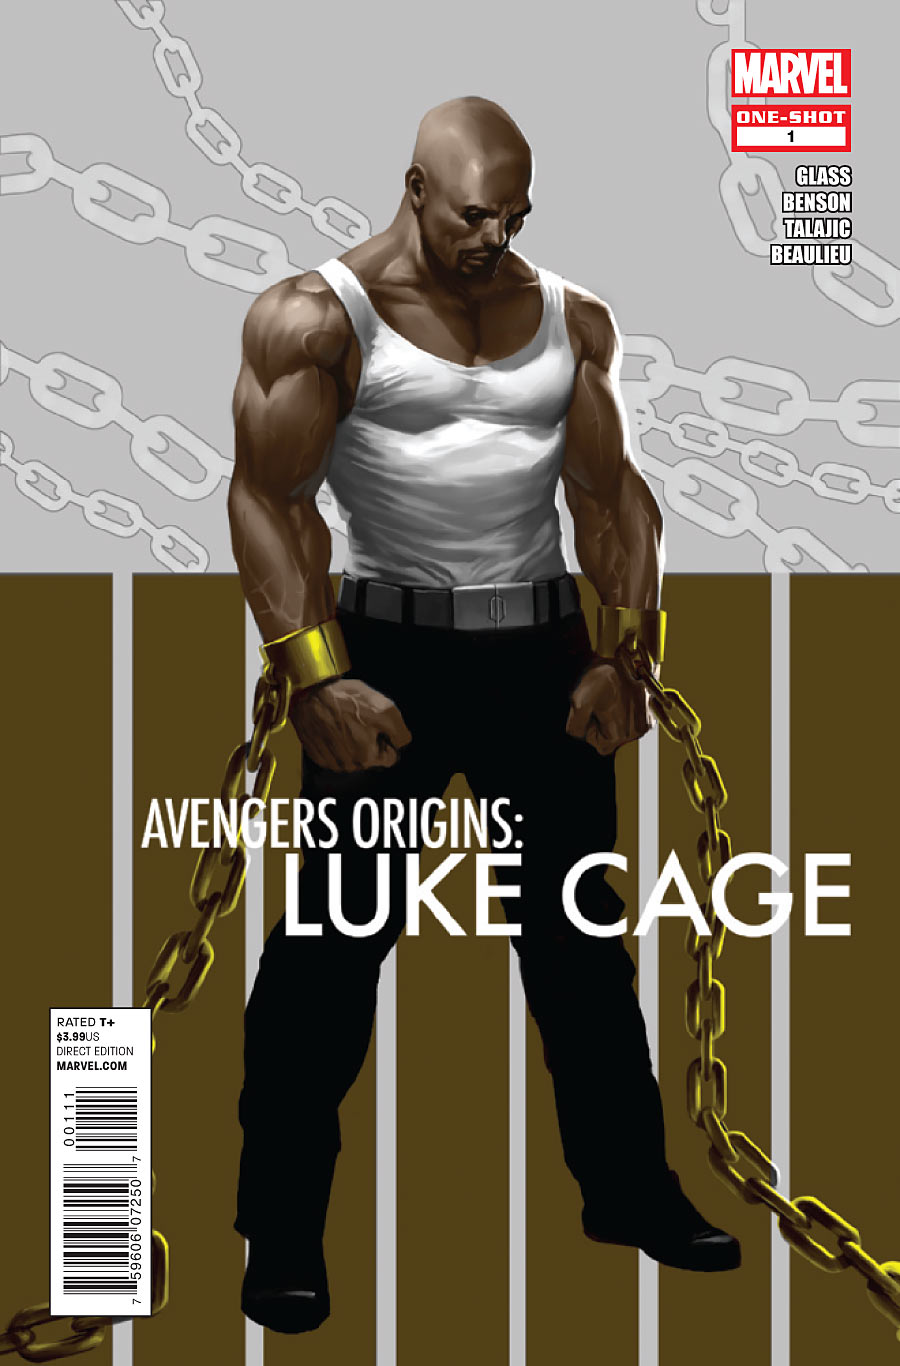 Most Inspiring Wallpaper Marvel Luke Cage - latest?cb\u003d20111111151151  Graphic_375741.jpg/revision/latest?cb\u003d20111111151151